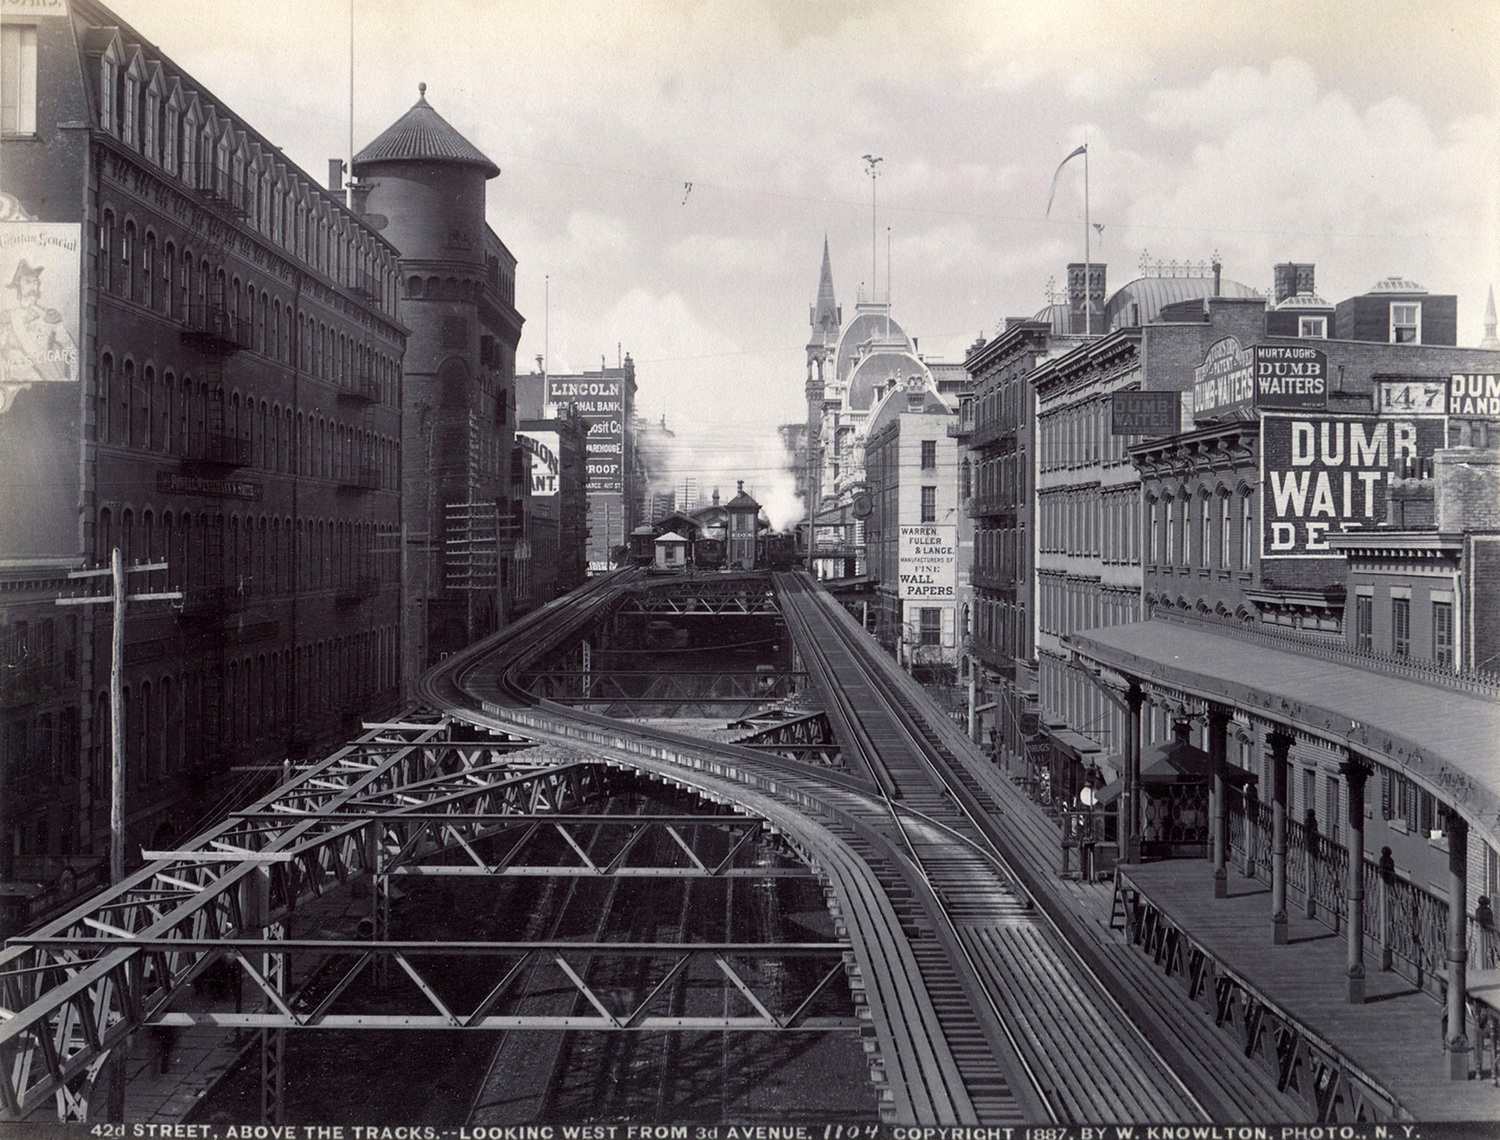 42nd Street, Above the Tracks, Looking West From 3rd Avenue, 1887